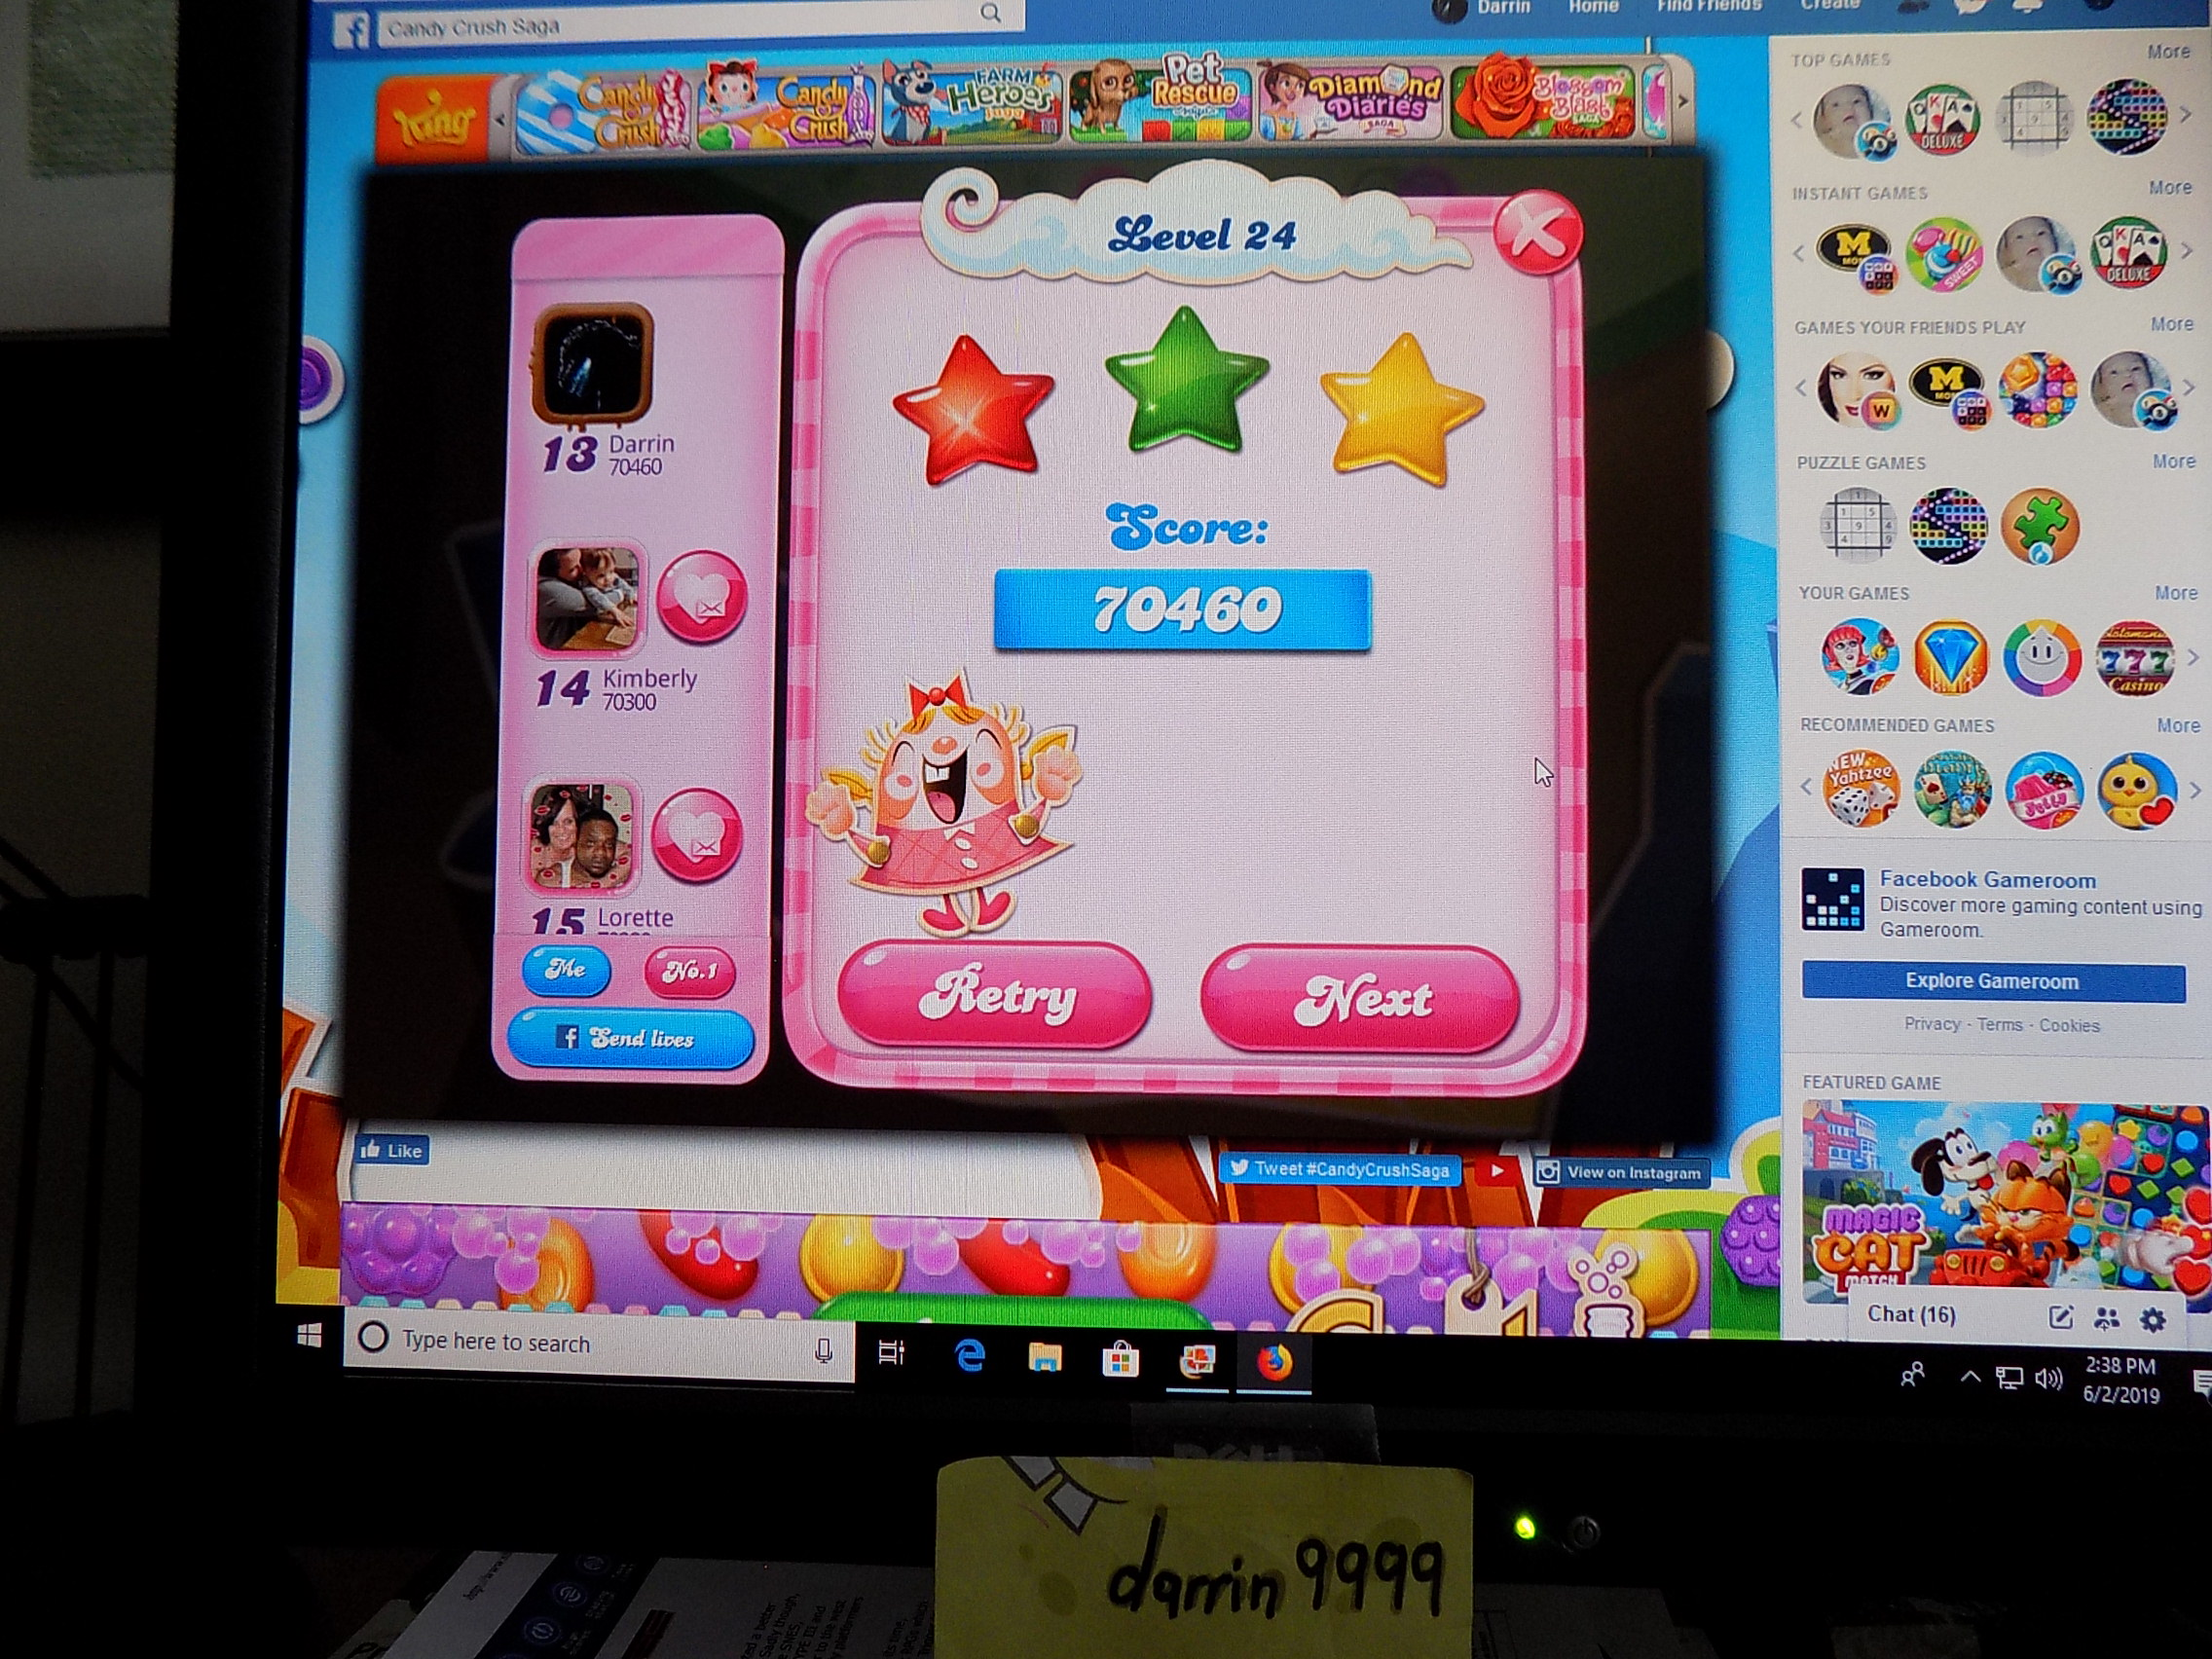 darrin9999: Candy Crush Saga: Level 024 (Web) 70,460 points on 2019-06-02 13:44:01